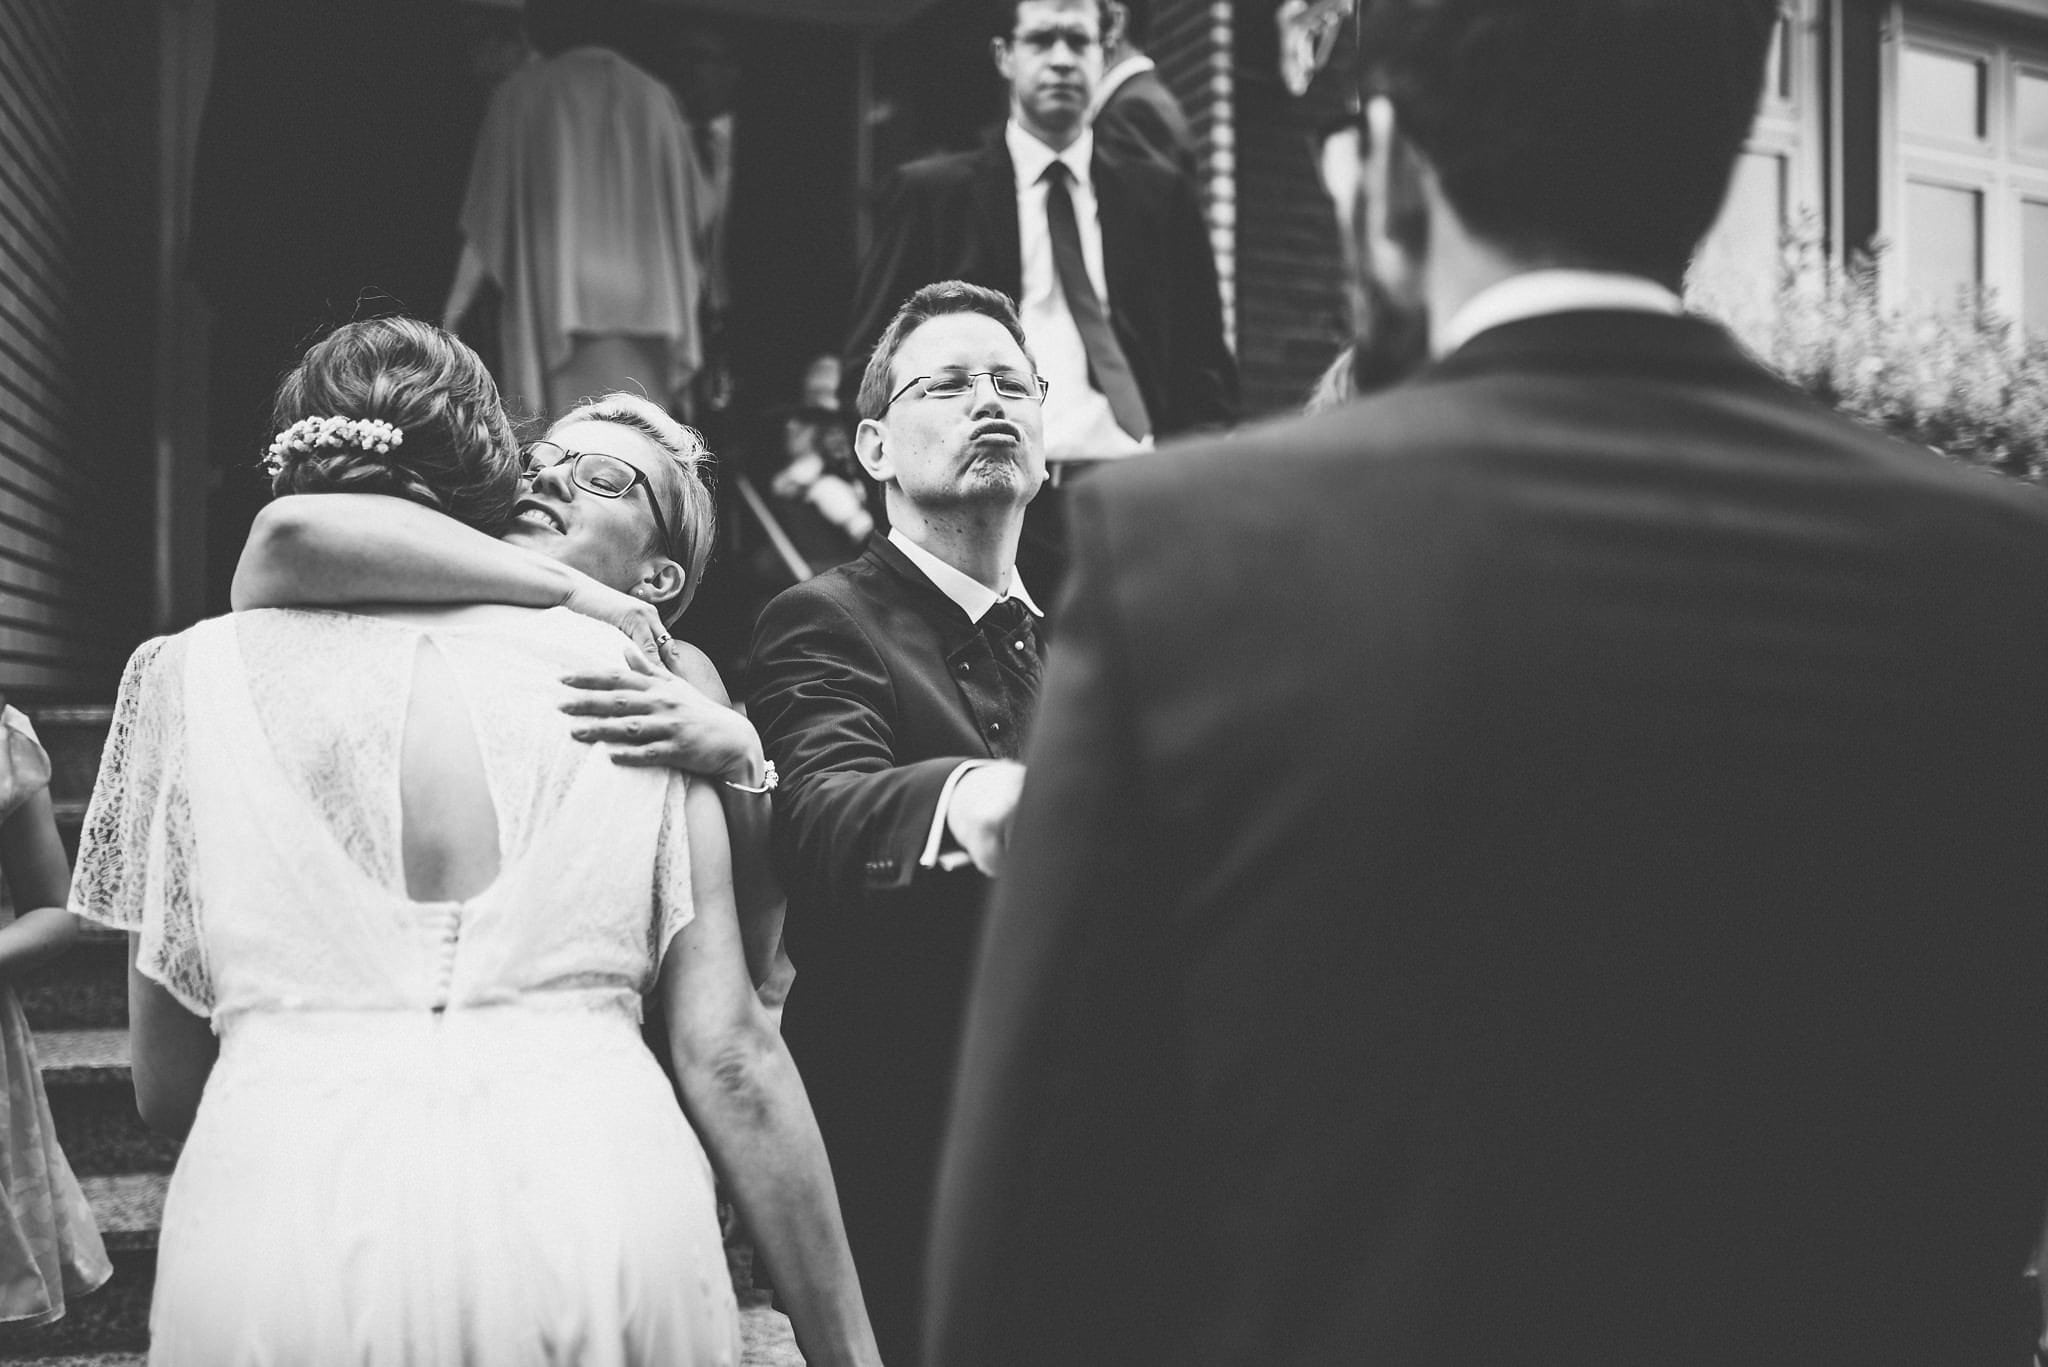 Documentary Wedding Photography by Maria Assia Photography of the bride and groom greeting their wedding guests